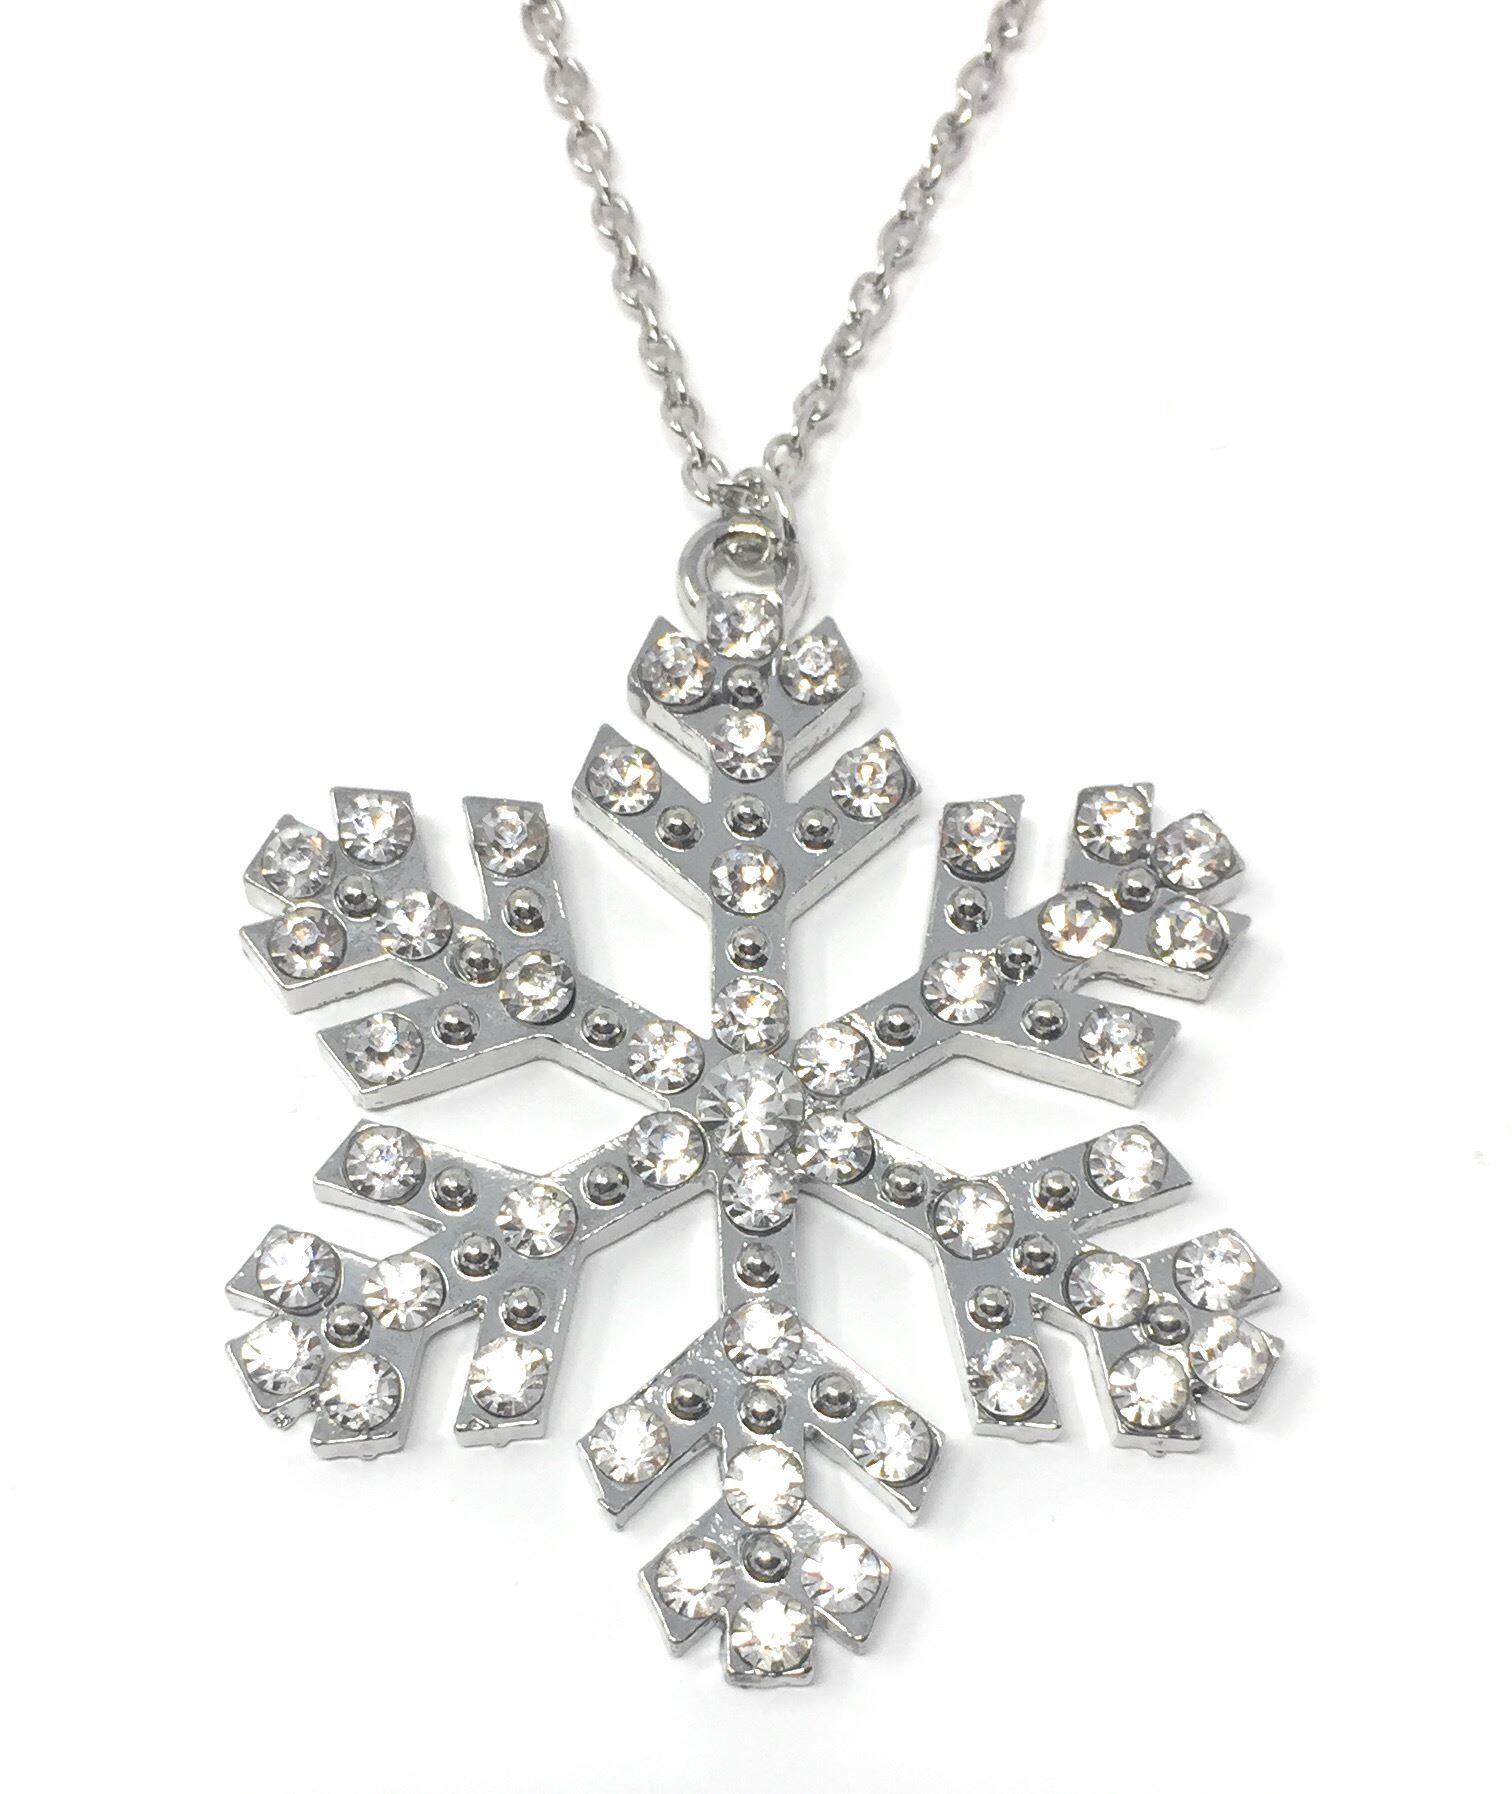 pendant necklace n o products b christmas sterling h snowflake w e s silver i collections